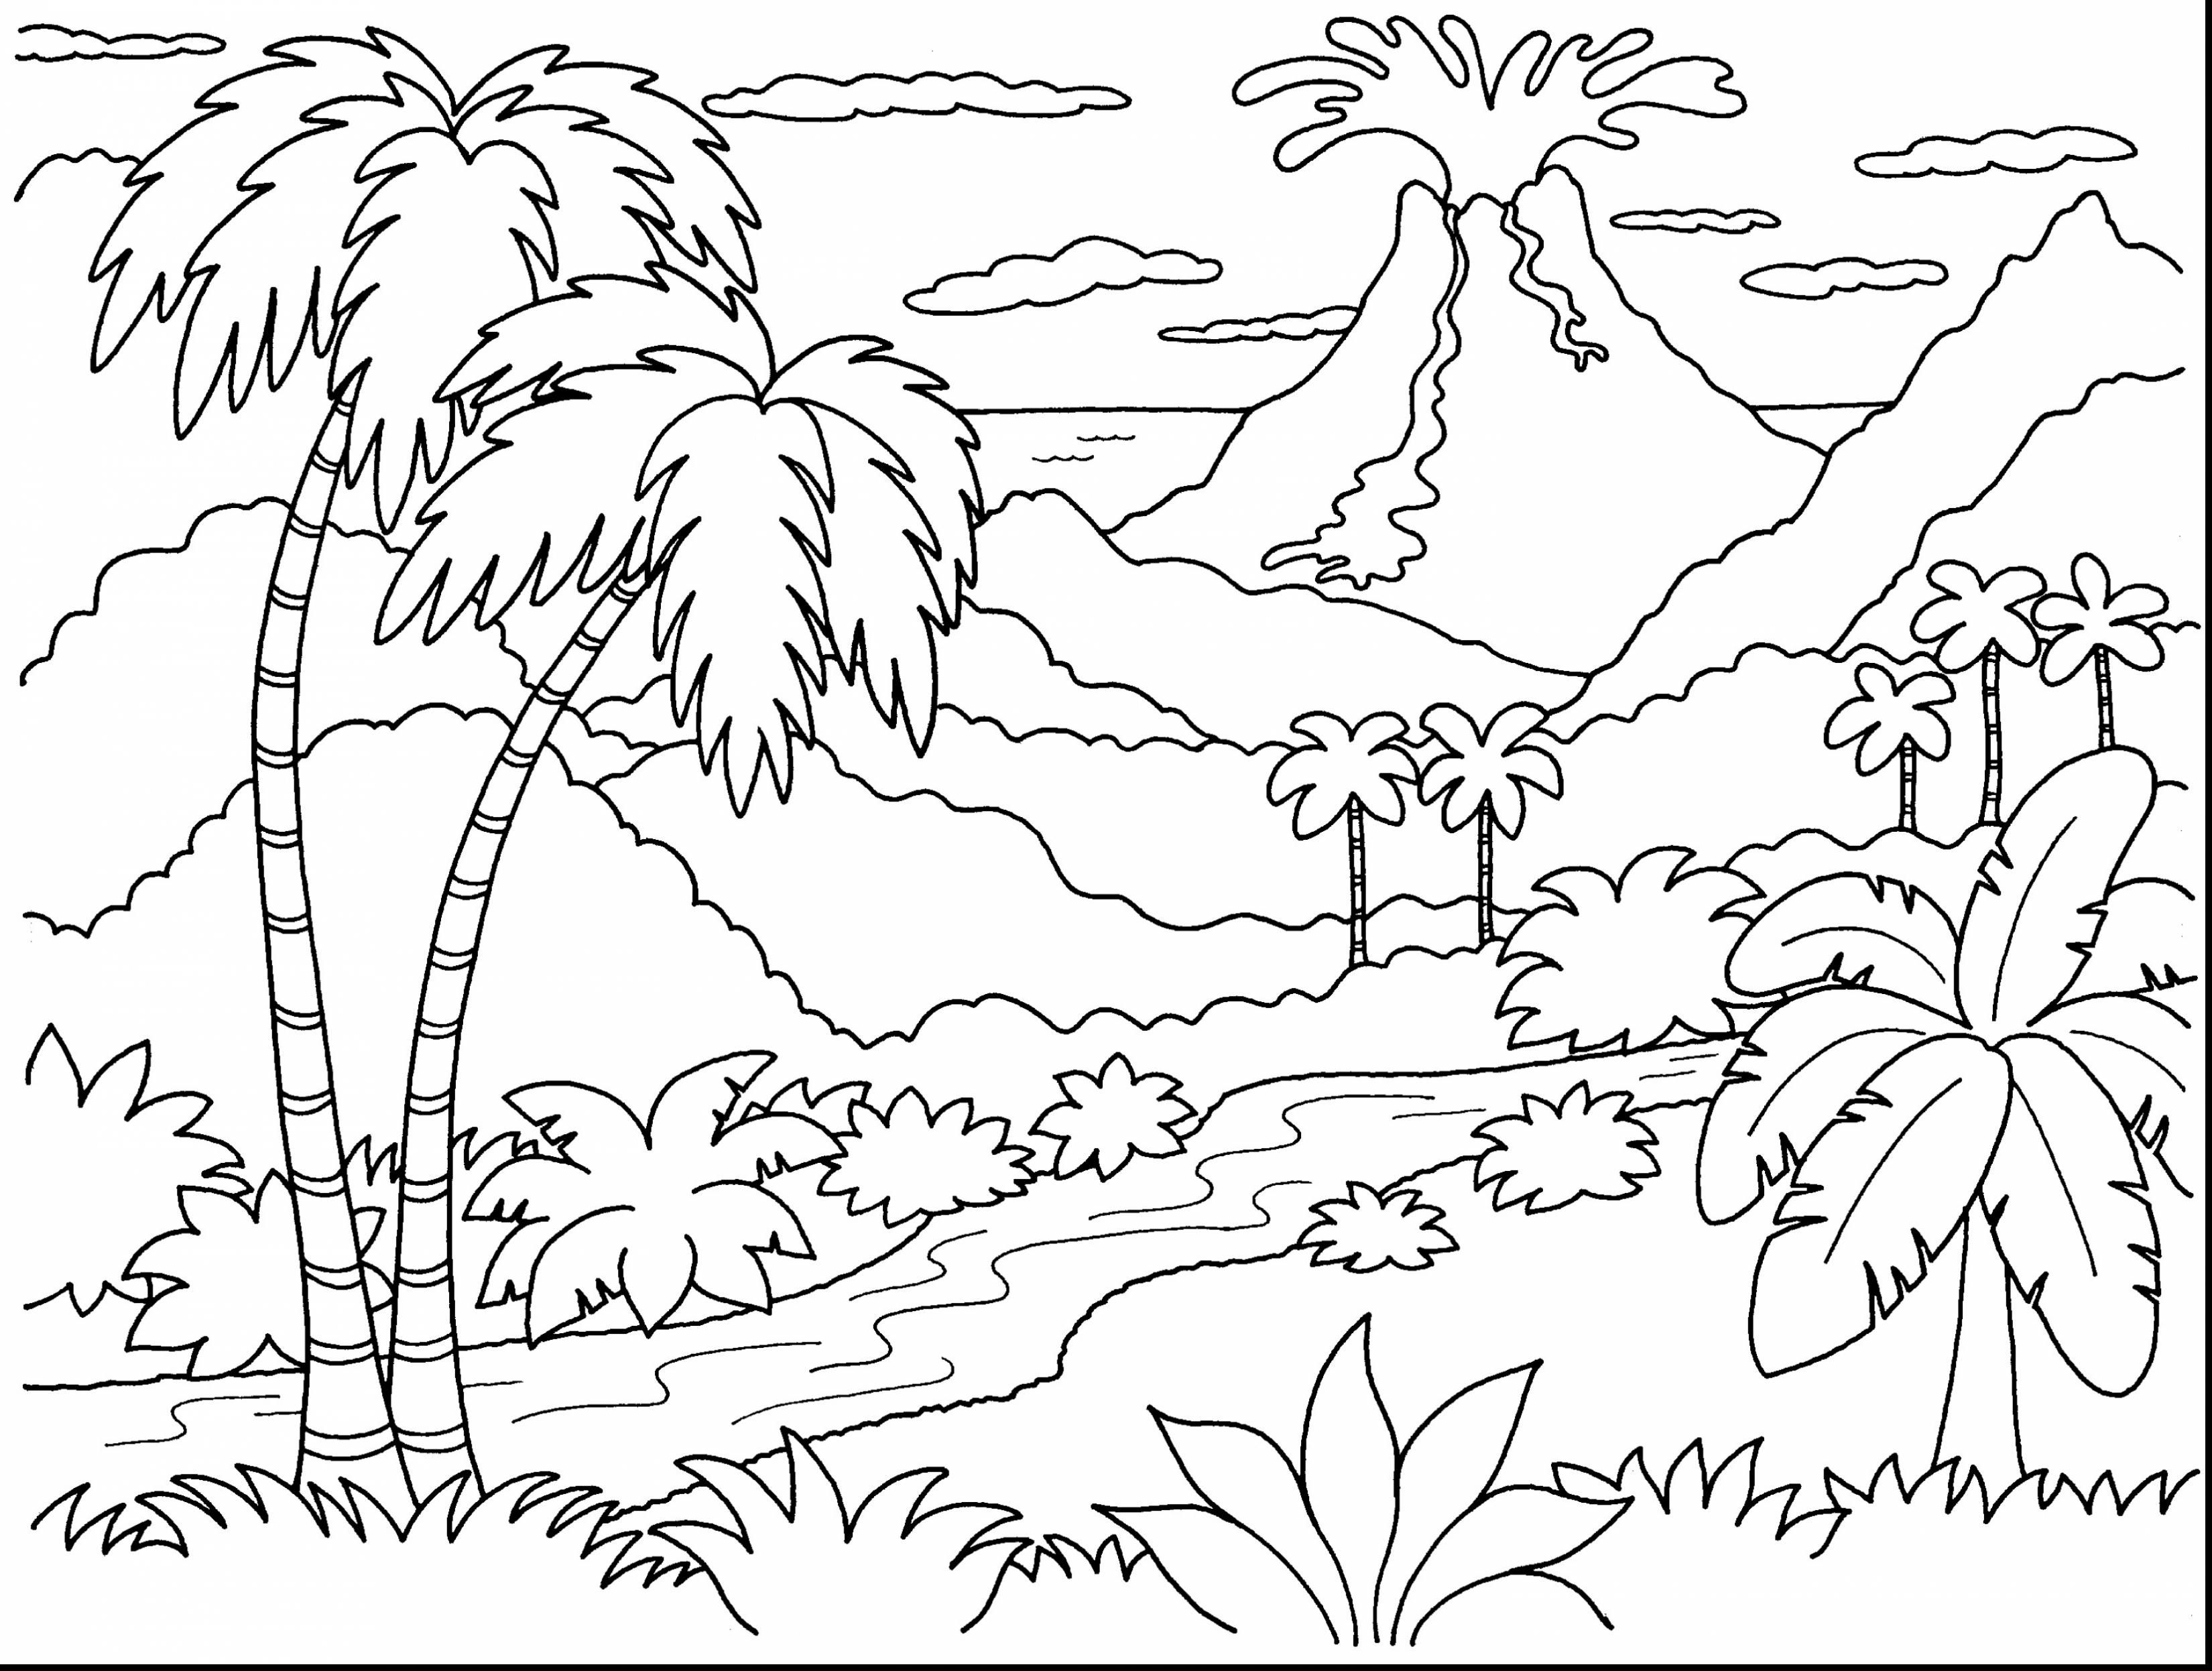 Remarkable Volcano Island Coloring Page With Pages And Eruption